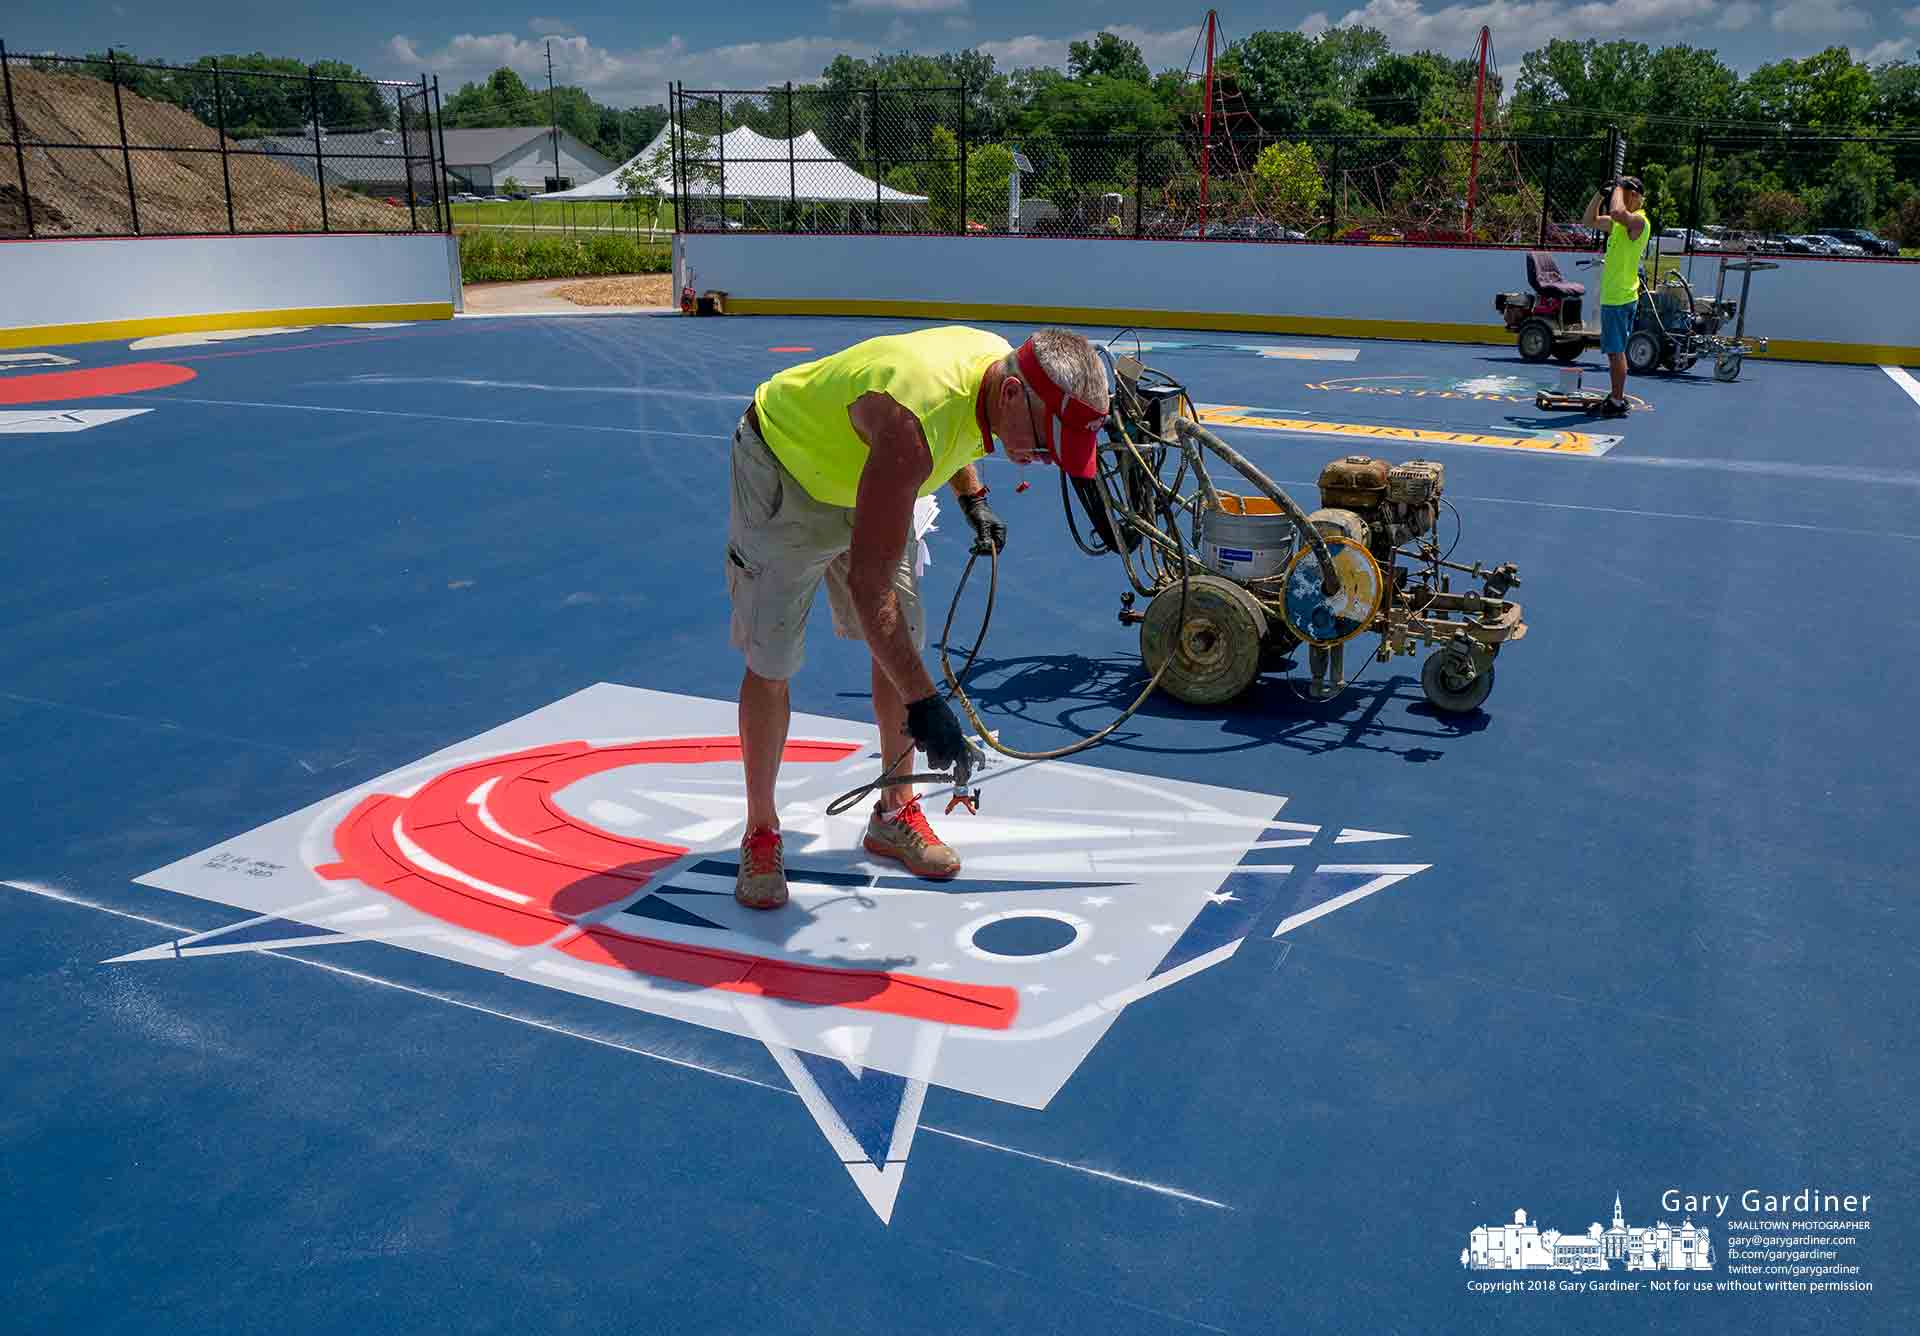 Workers paint logos on the surface of the Thomas Knox hockey rink getting it ready for the dedication Saturday morning. My final Photo for June 29, 2018.